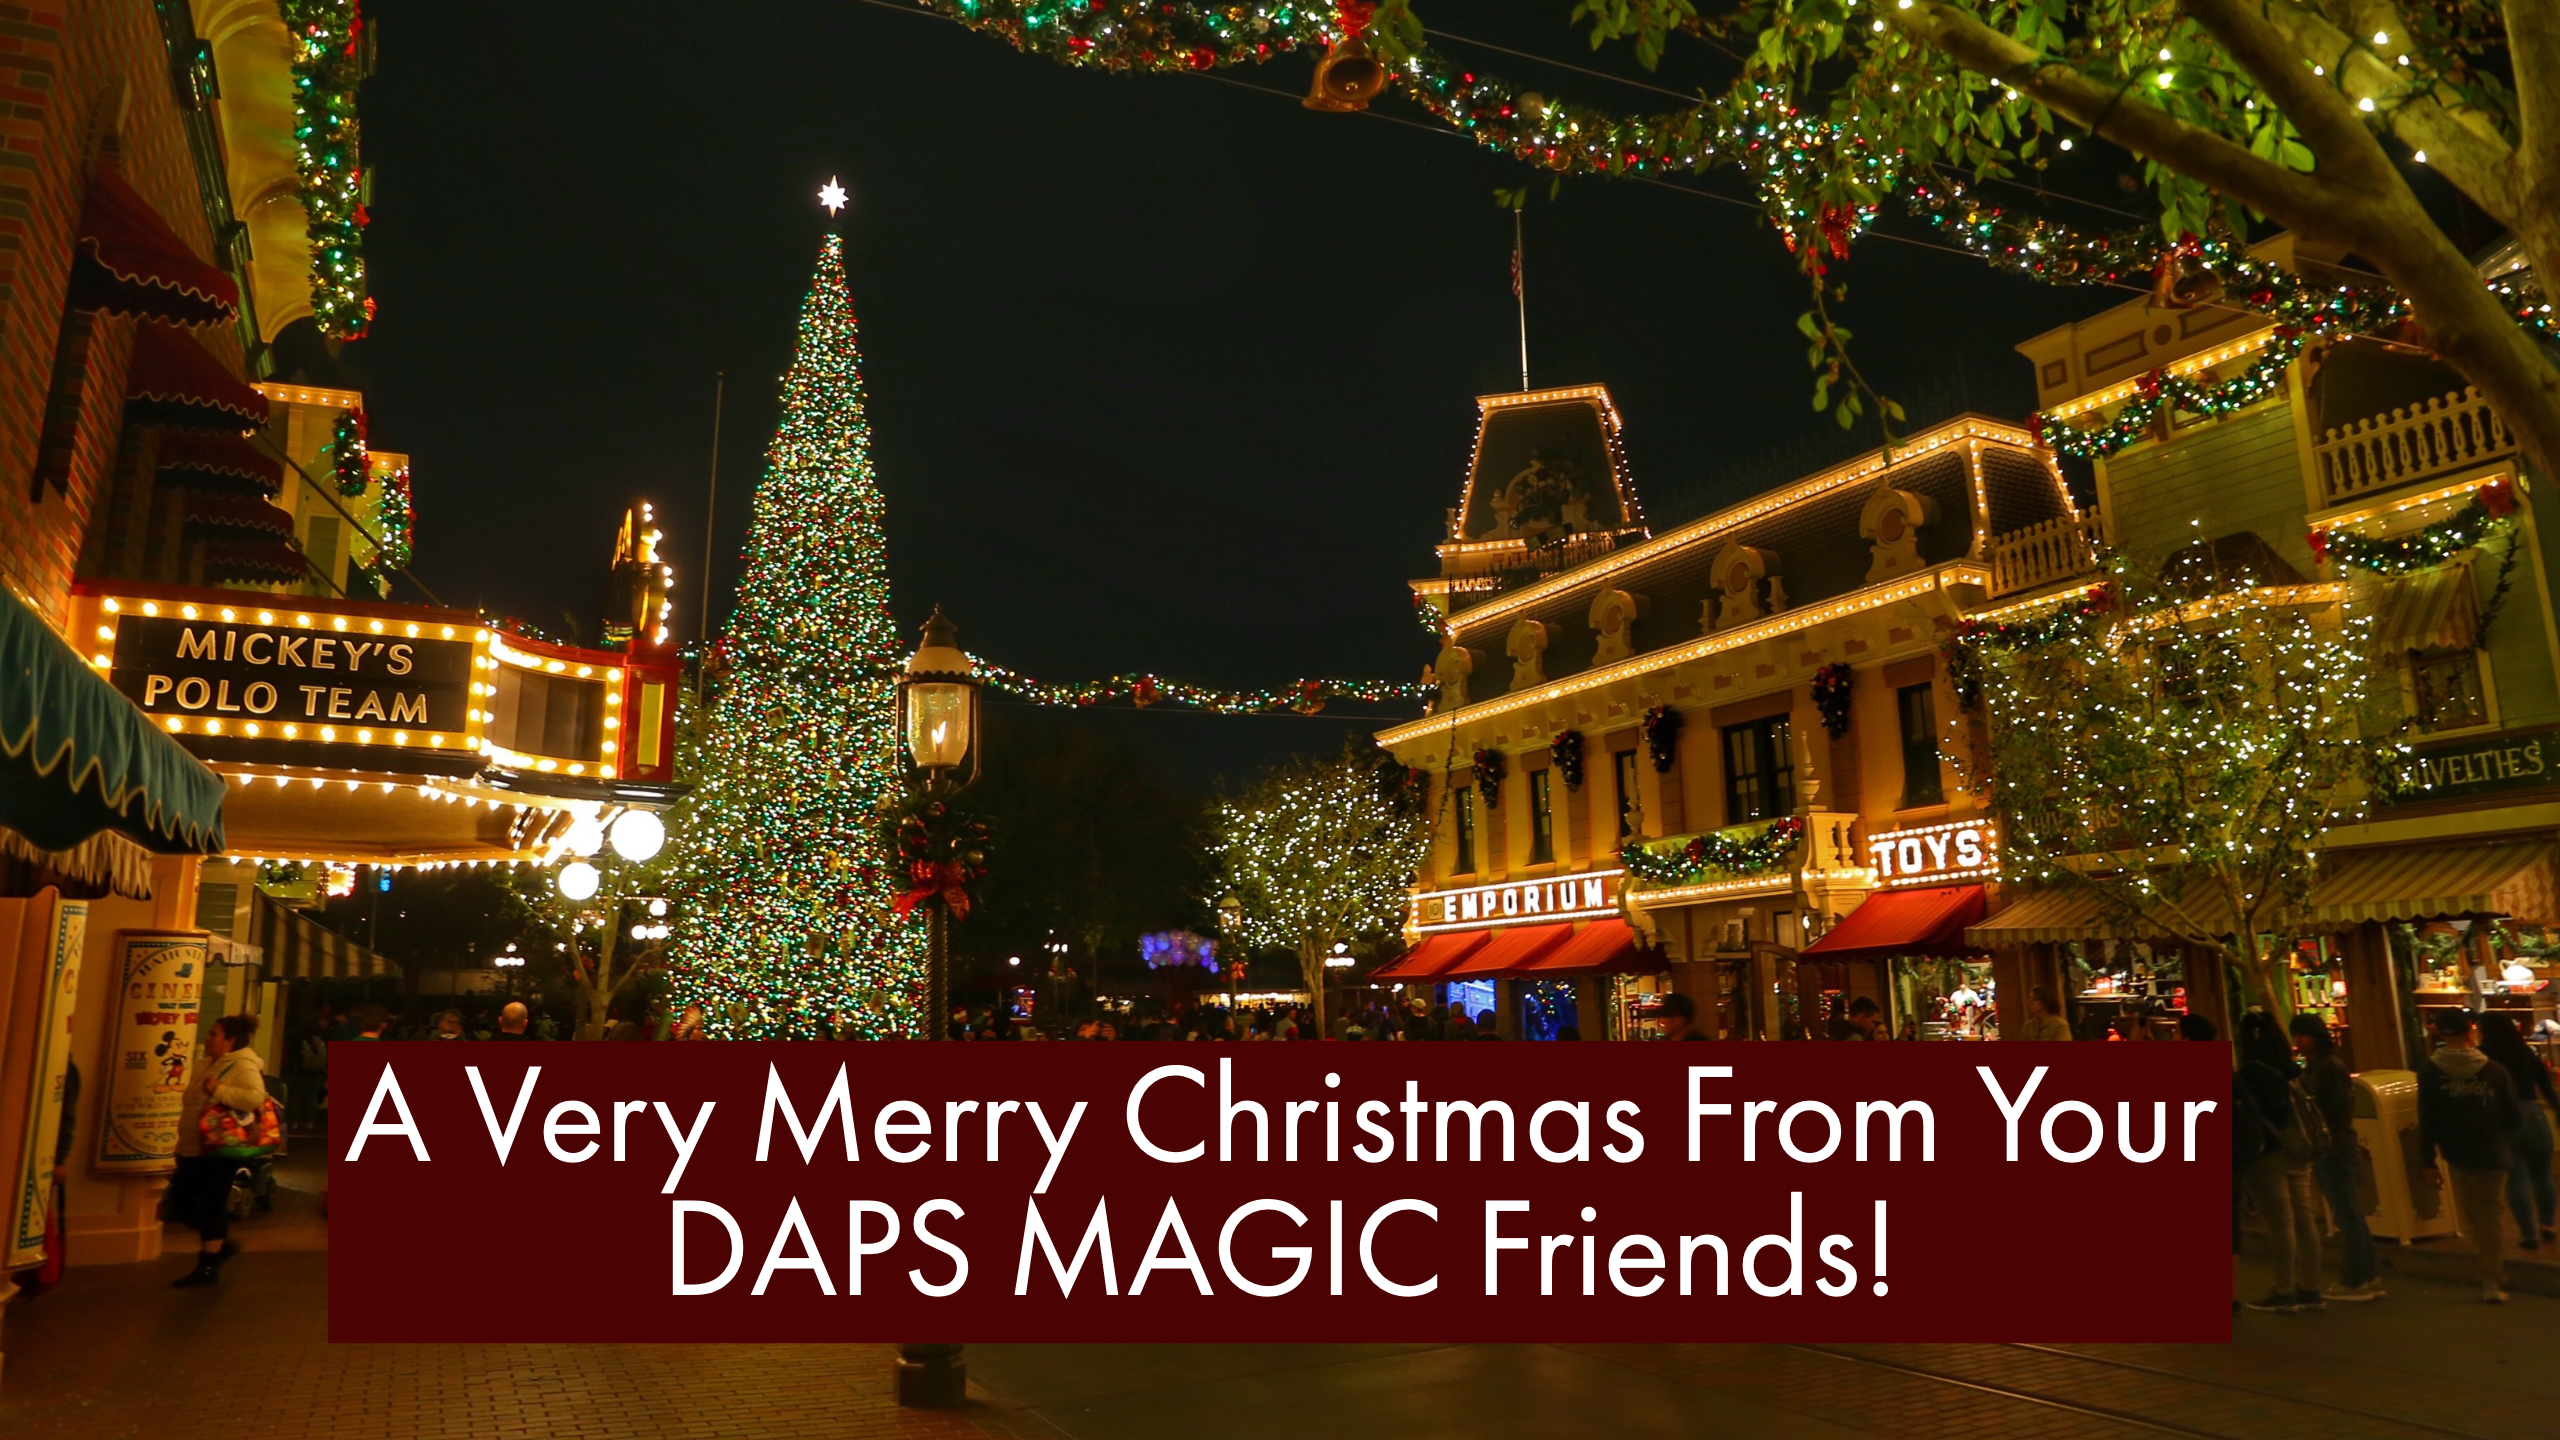 A Very Merry Christmas From Your DAPS MAGIC Friends!